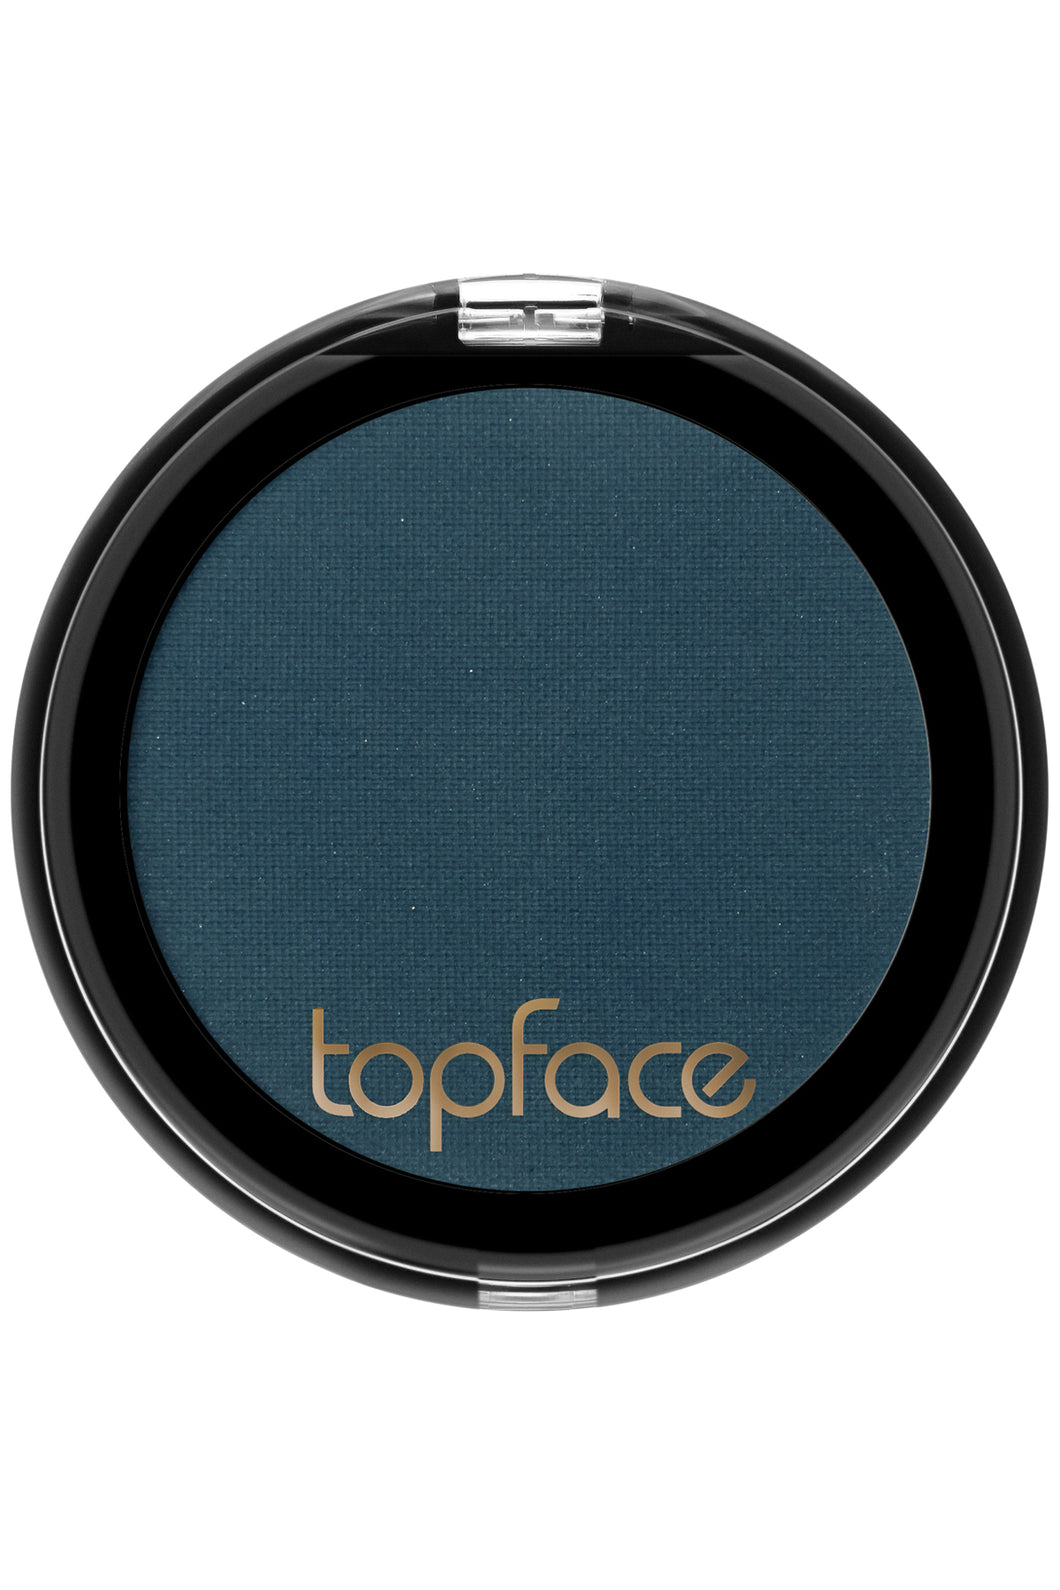 Topface - Instyle Pearl Mono Eyeshadow - 109 - Midnight Blue